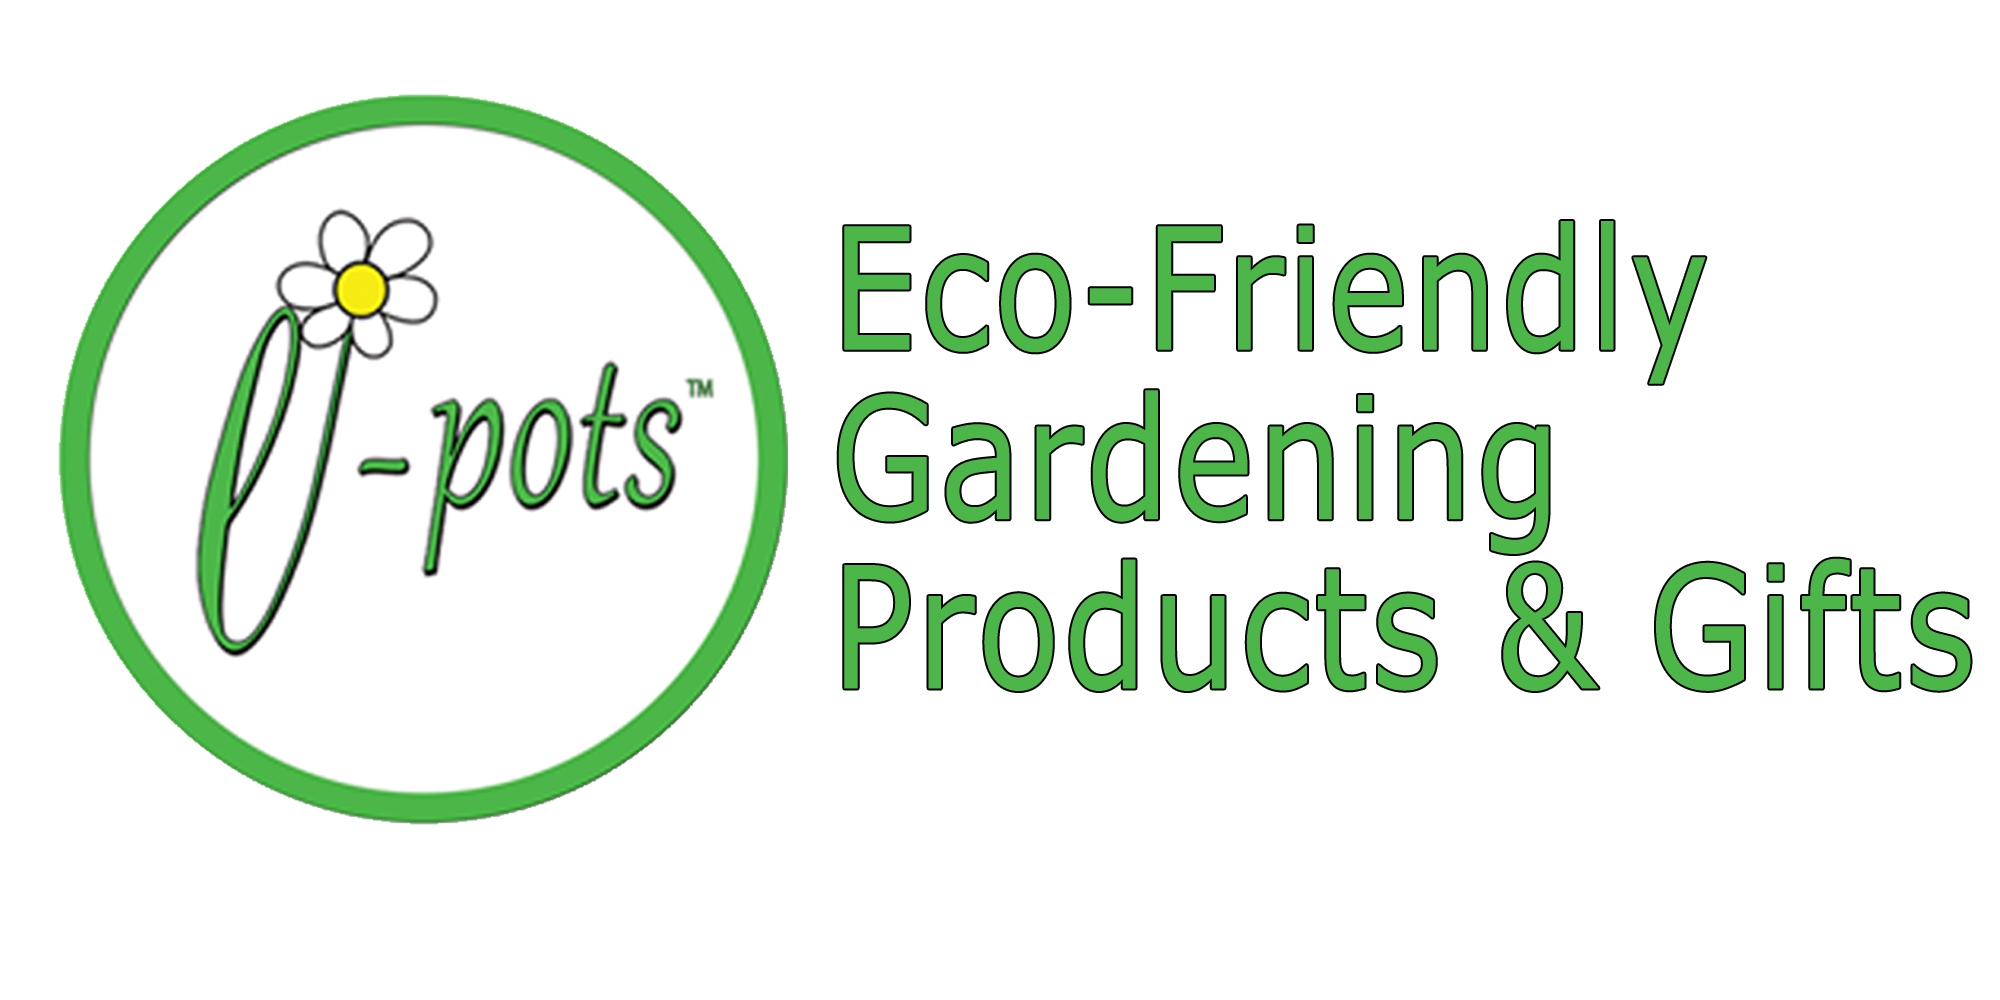 e-Pots-Eco-Friendly Gardening Products And Gifts